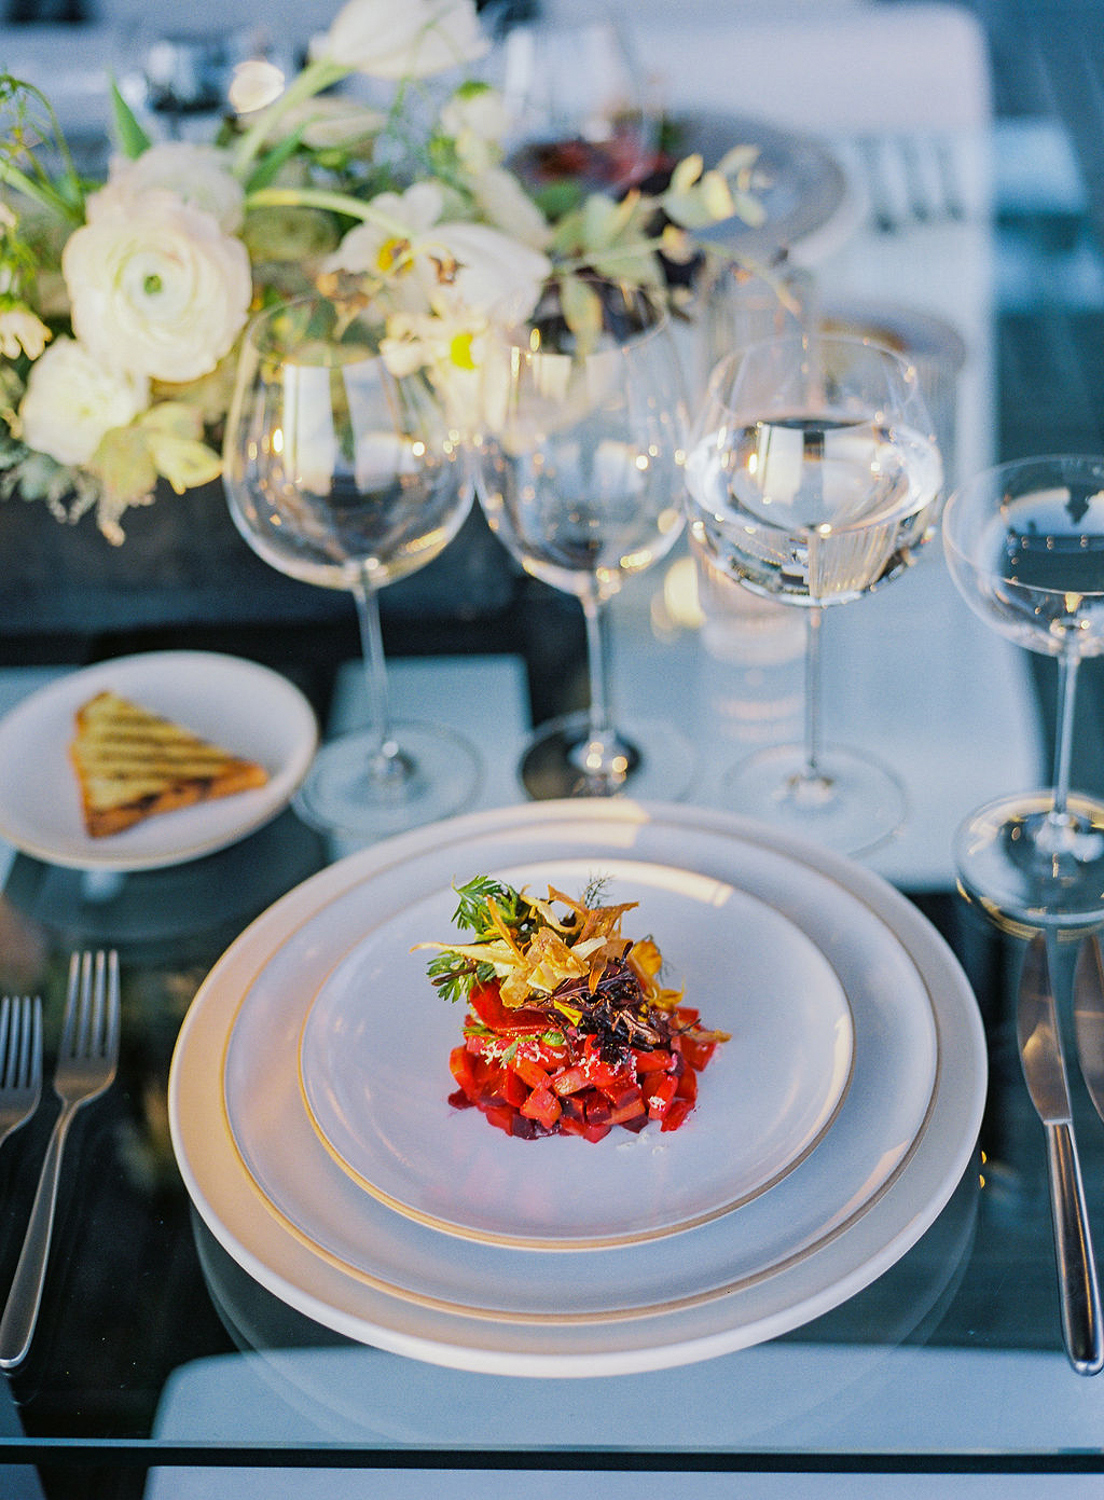 appetizer on white plates at wedding reception place setting